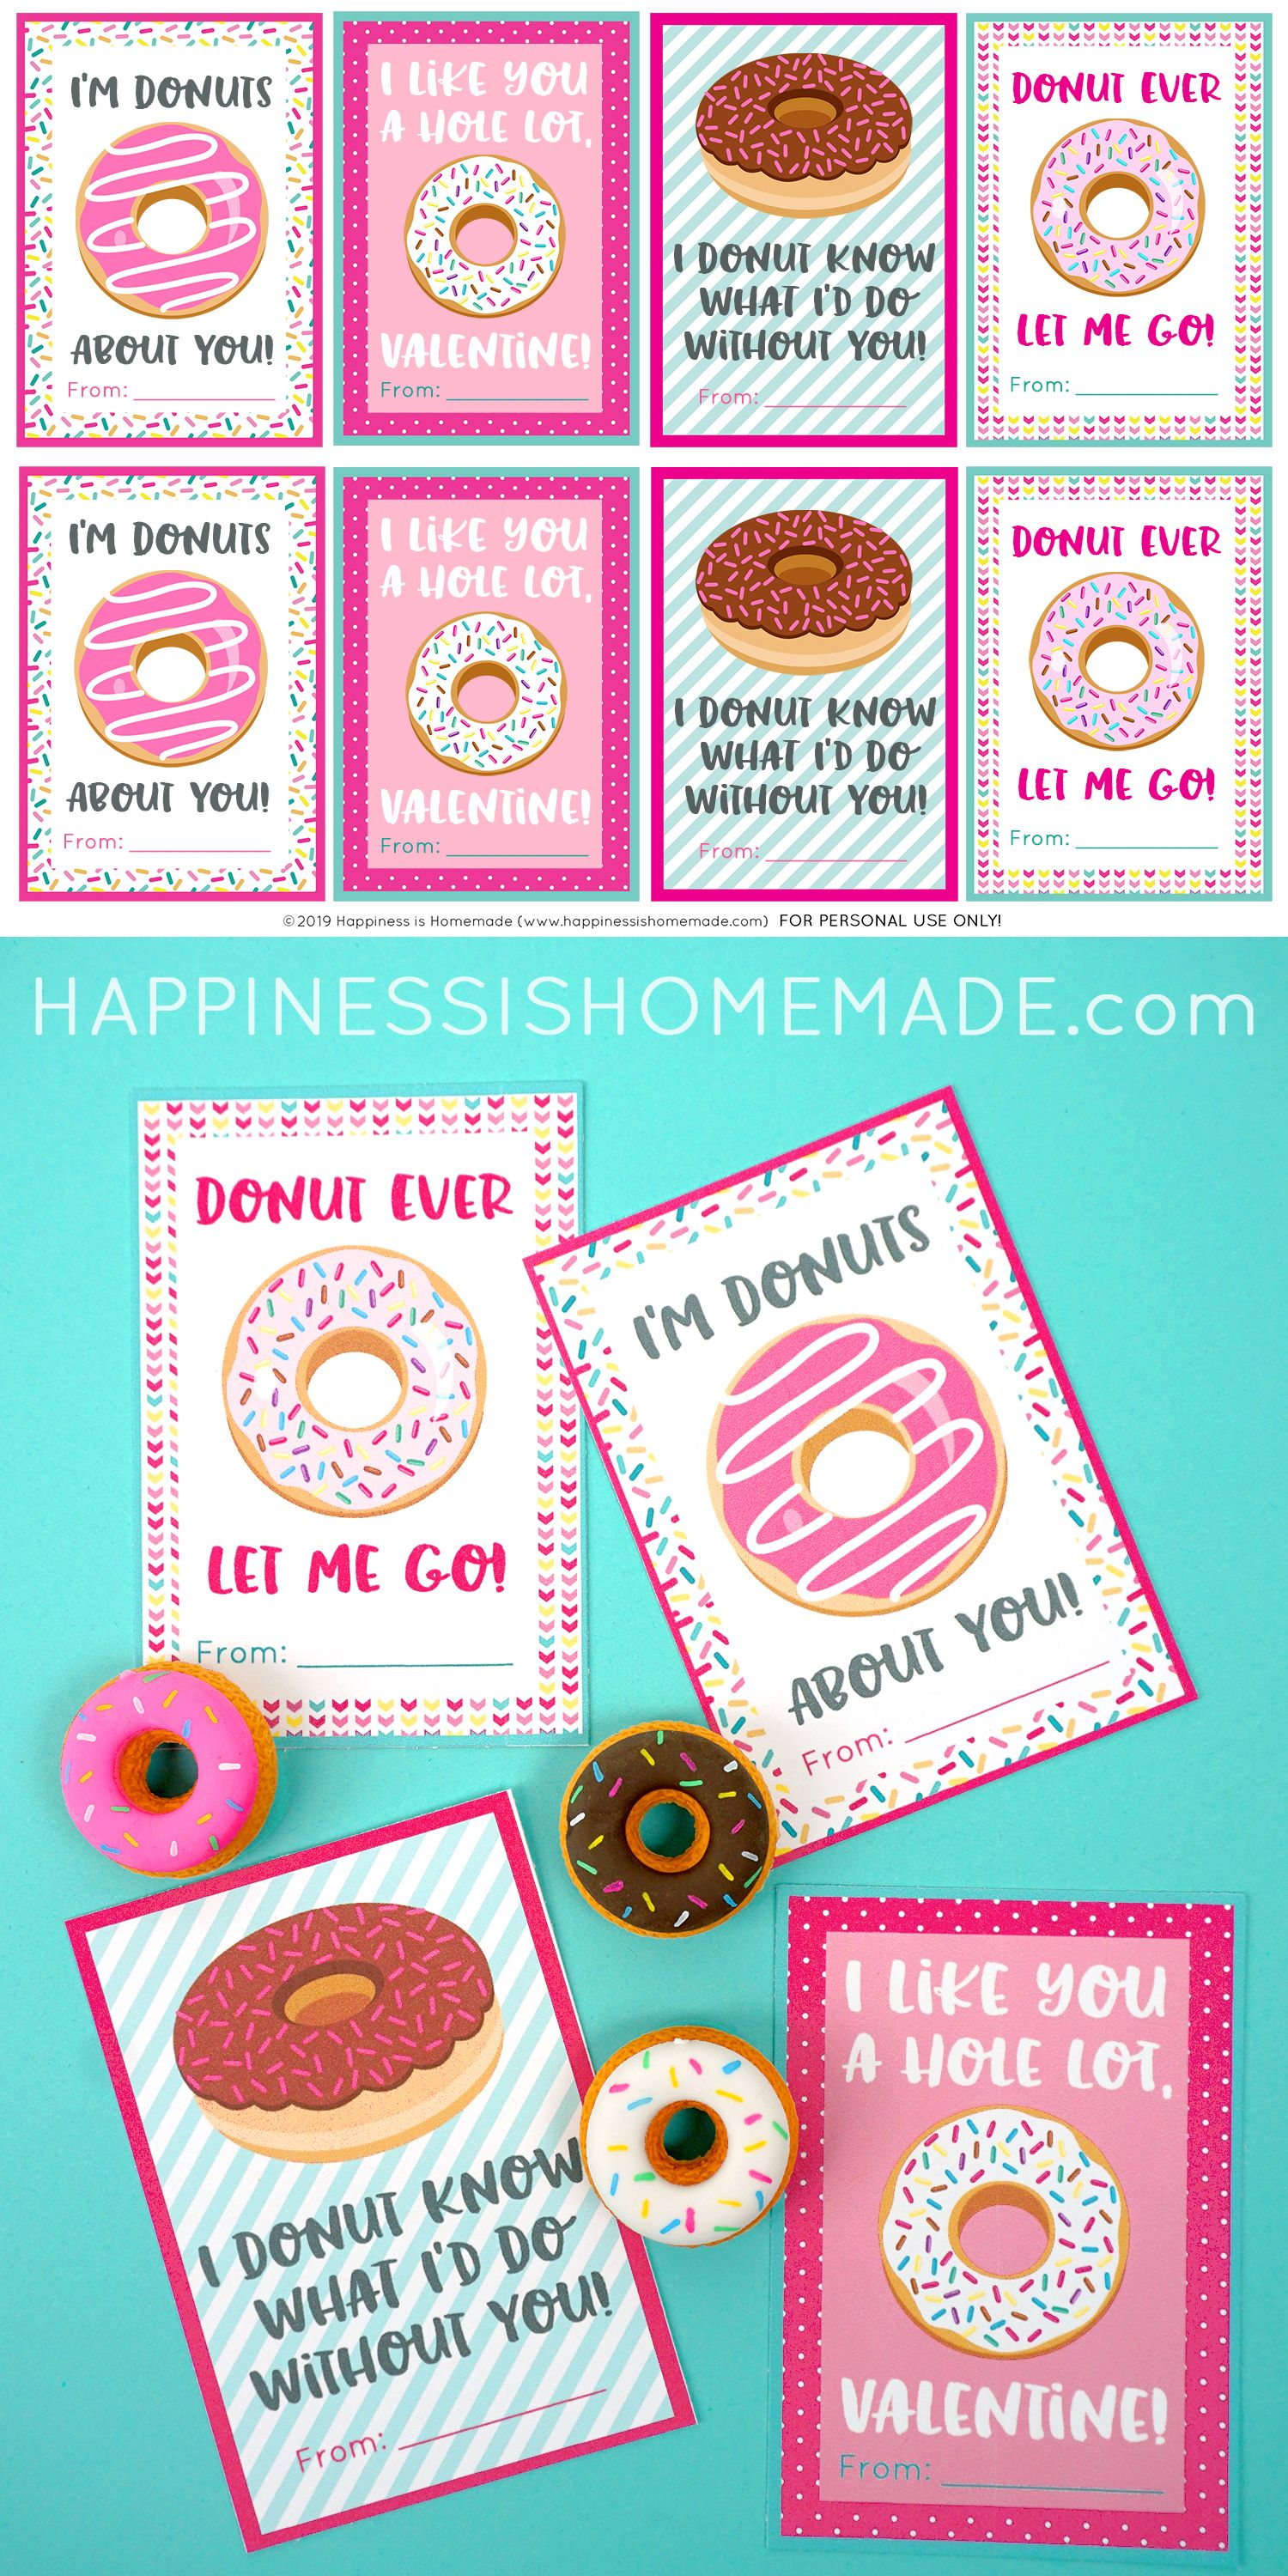 Ilove You So Much You Donut Even Know Gif Iloveyousomuch Youdonutevenknow Puns Happy Valentines Day Funny Happy Valentines Day Card Funniest Valentines Cards